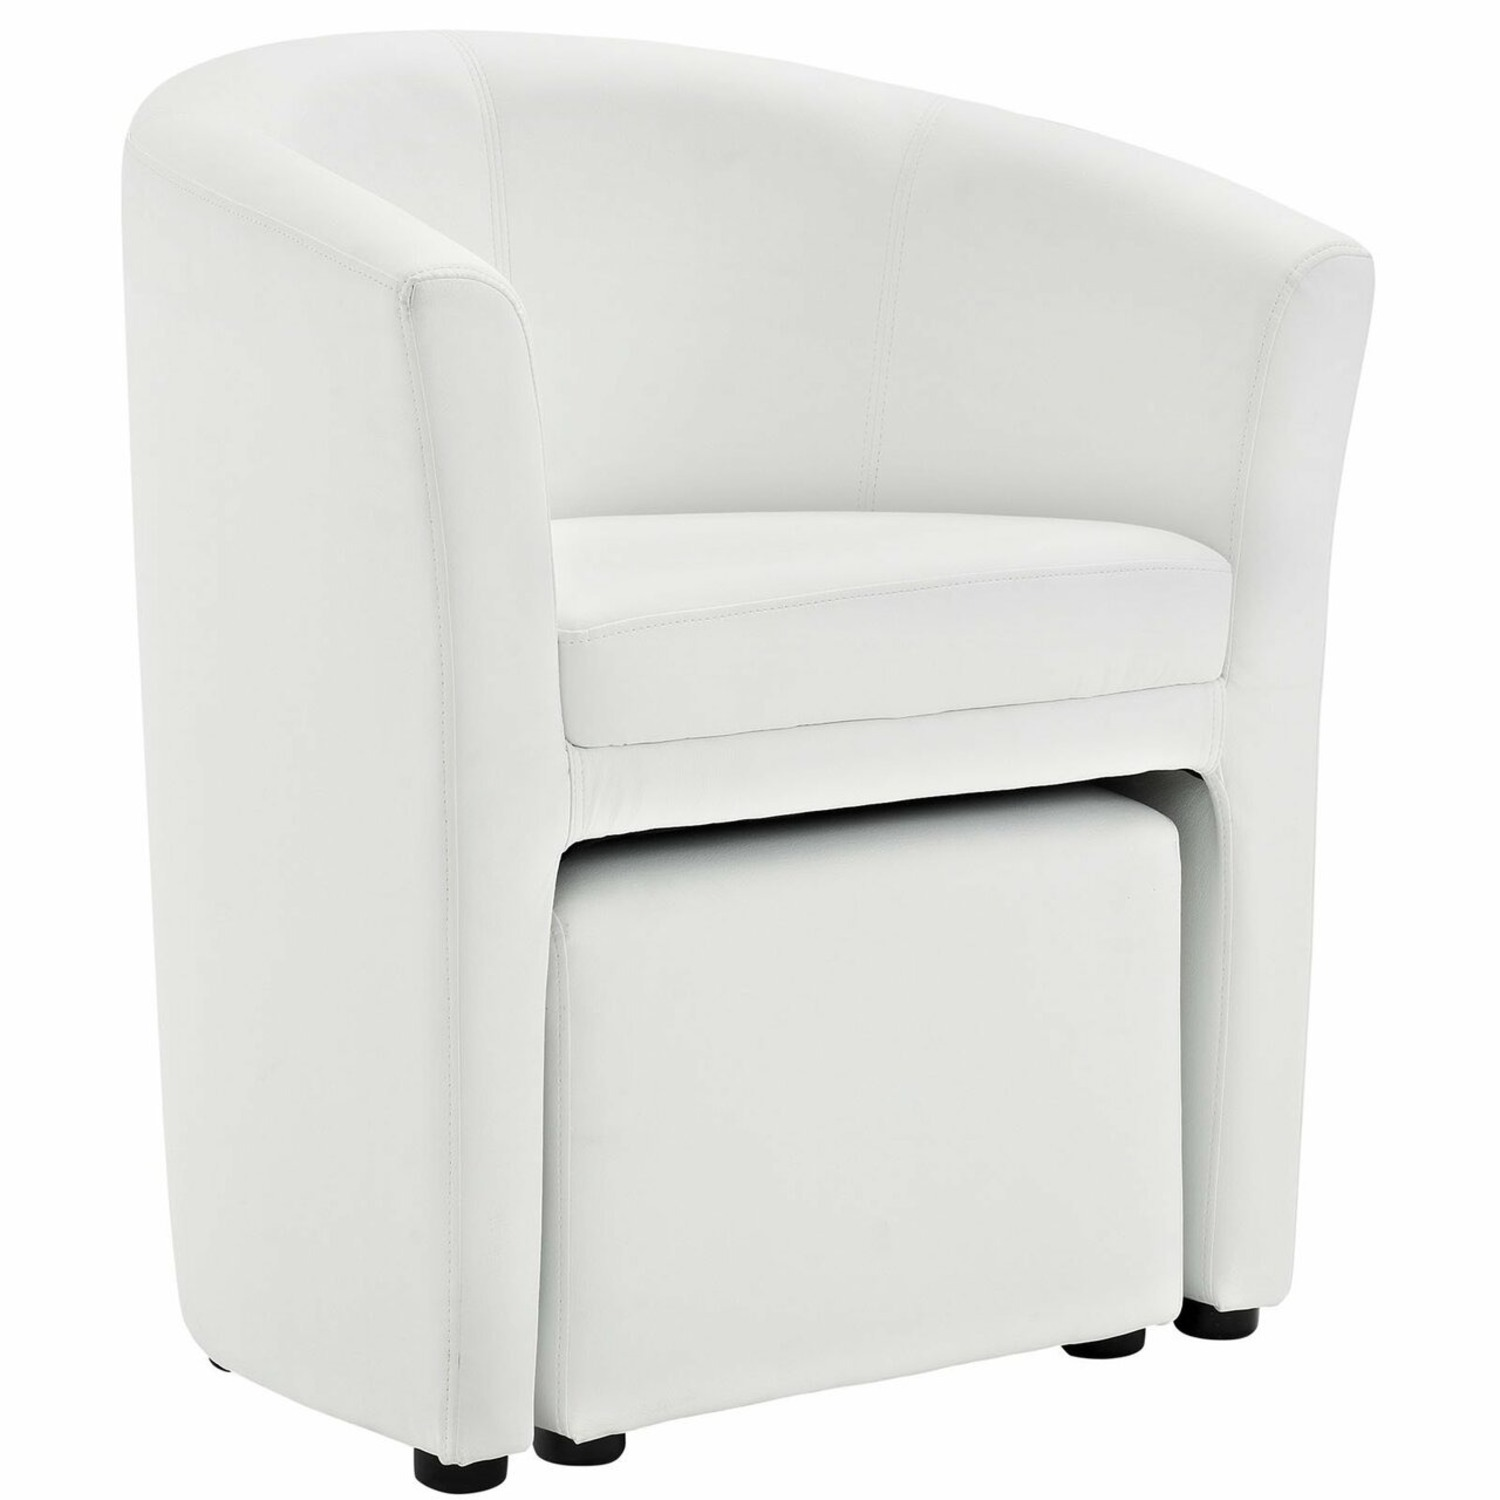 Armchair & Ottoman In White Color Upholstery - image-1